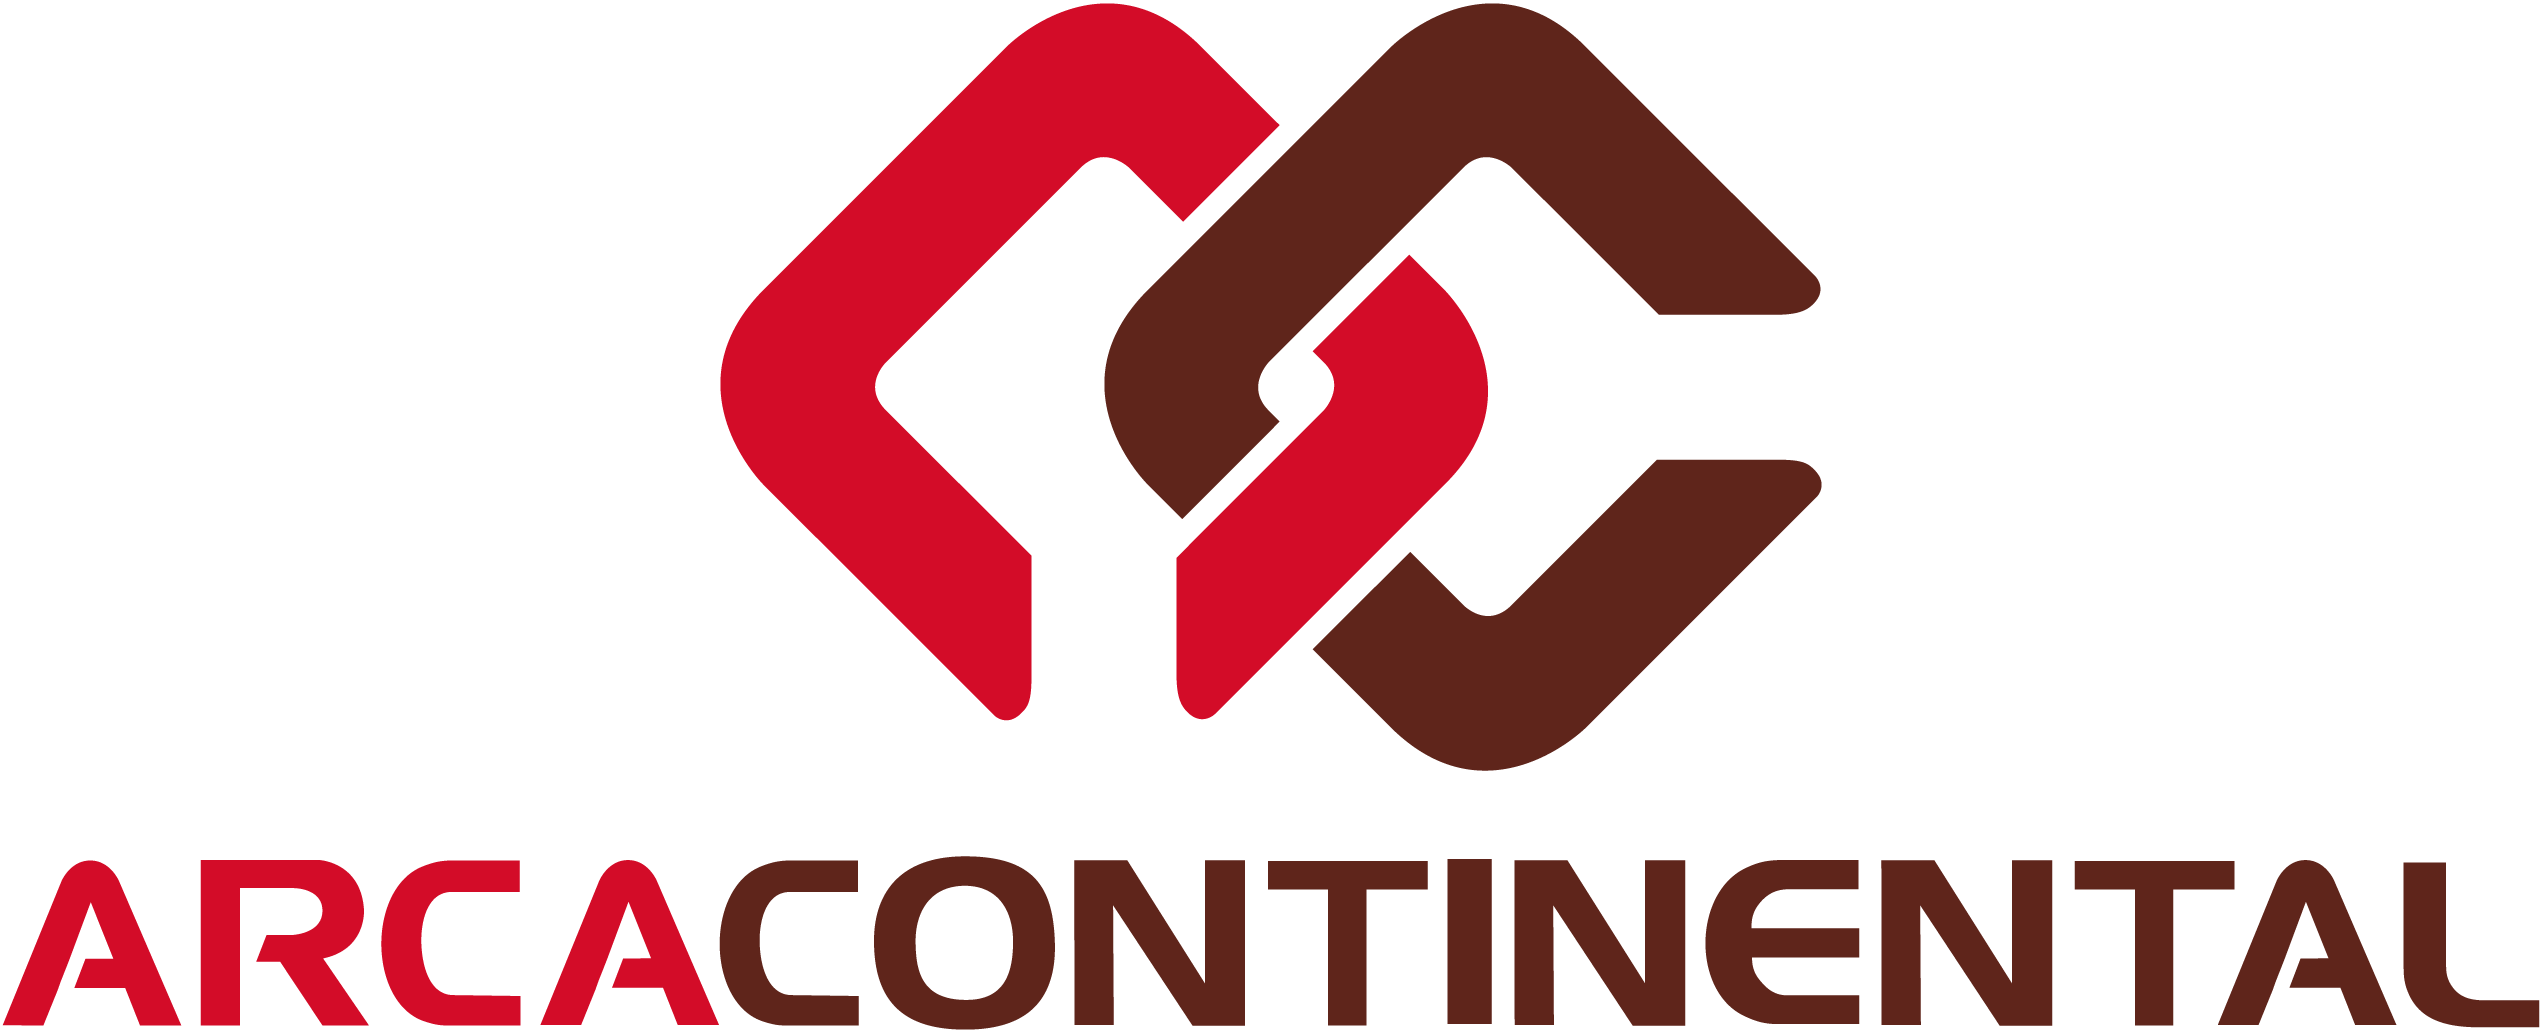 Logo_Arca_Continental.png